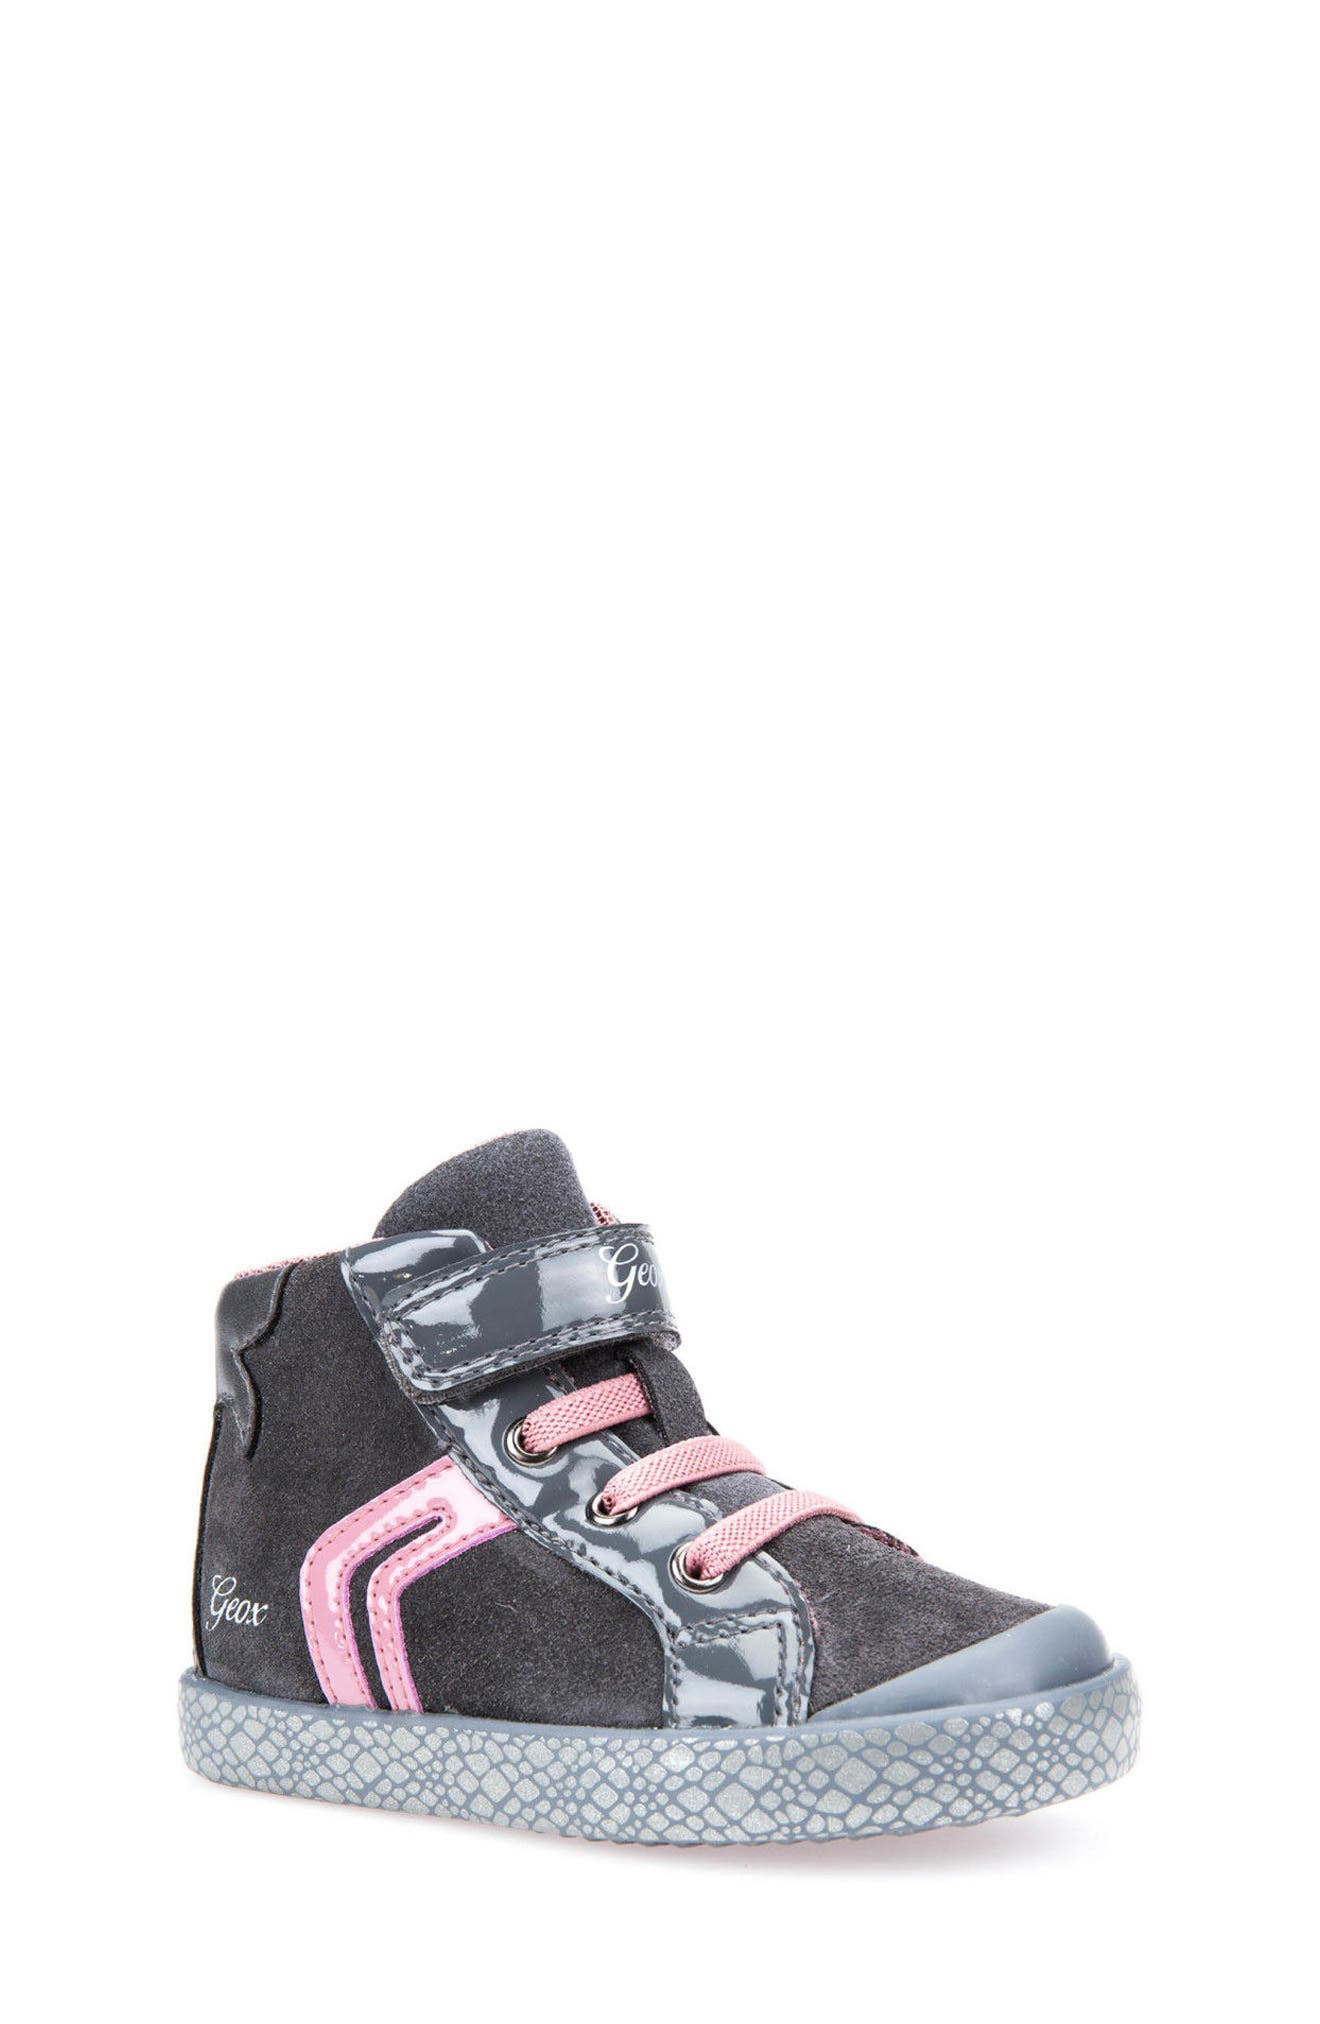 Geox Kiwi Girl High Top Sneaker (Walker & Toddler)